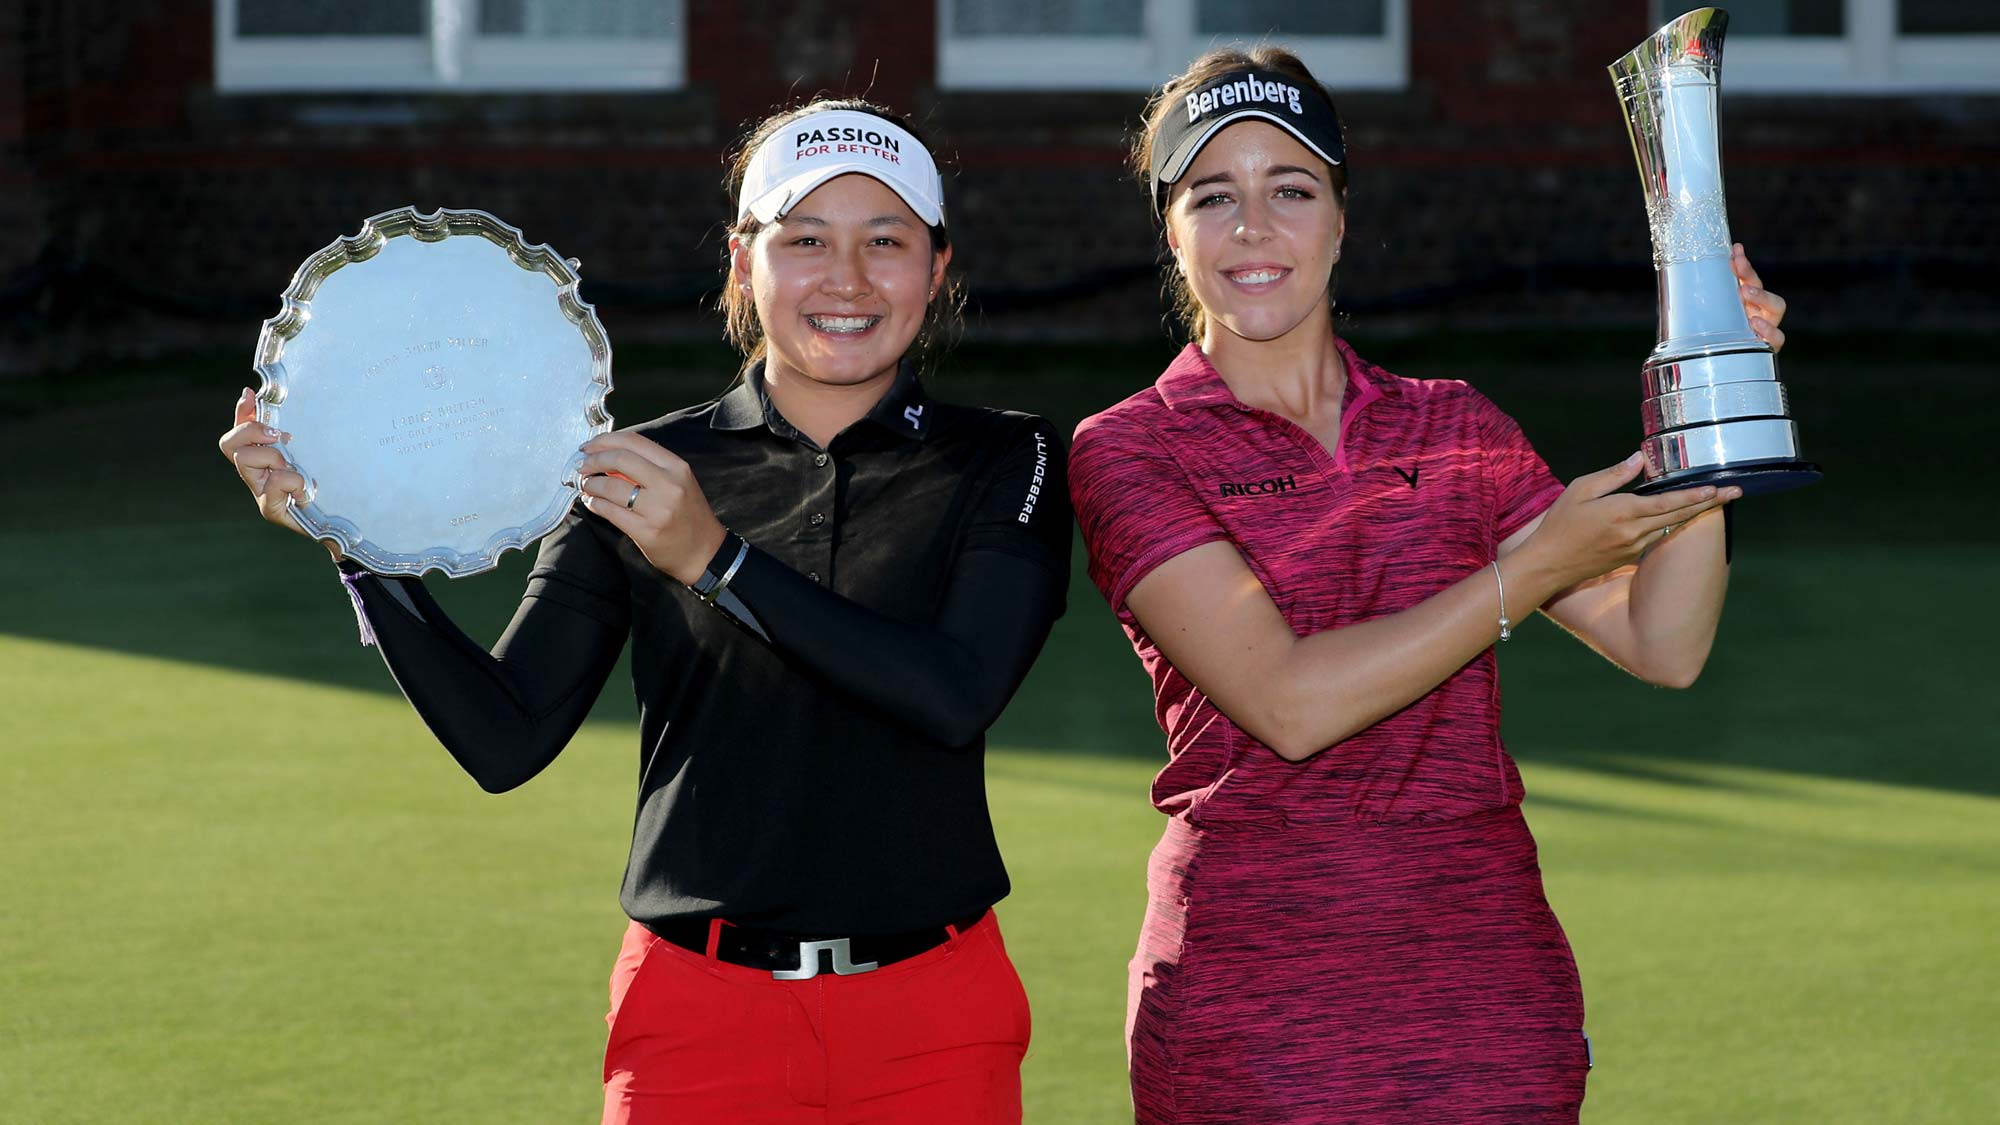 Georgia Hall of England holds the trophy after her victory with Atthaya Thitikul of Thailand the winner of the low amateur award in the final round of the Ricoh Women's British Open at Royal Lytham and St Annes Golf Club on August 5, 2018 in Lytham St Annes, England.